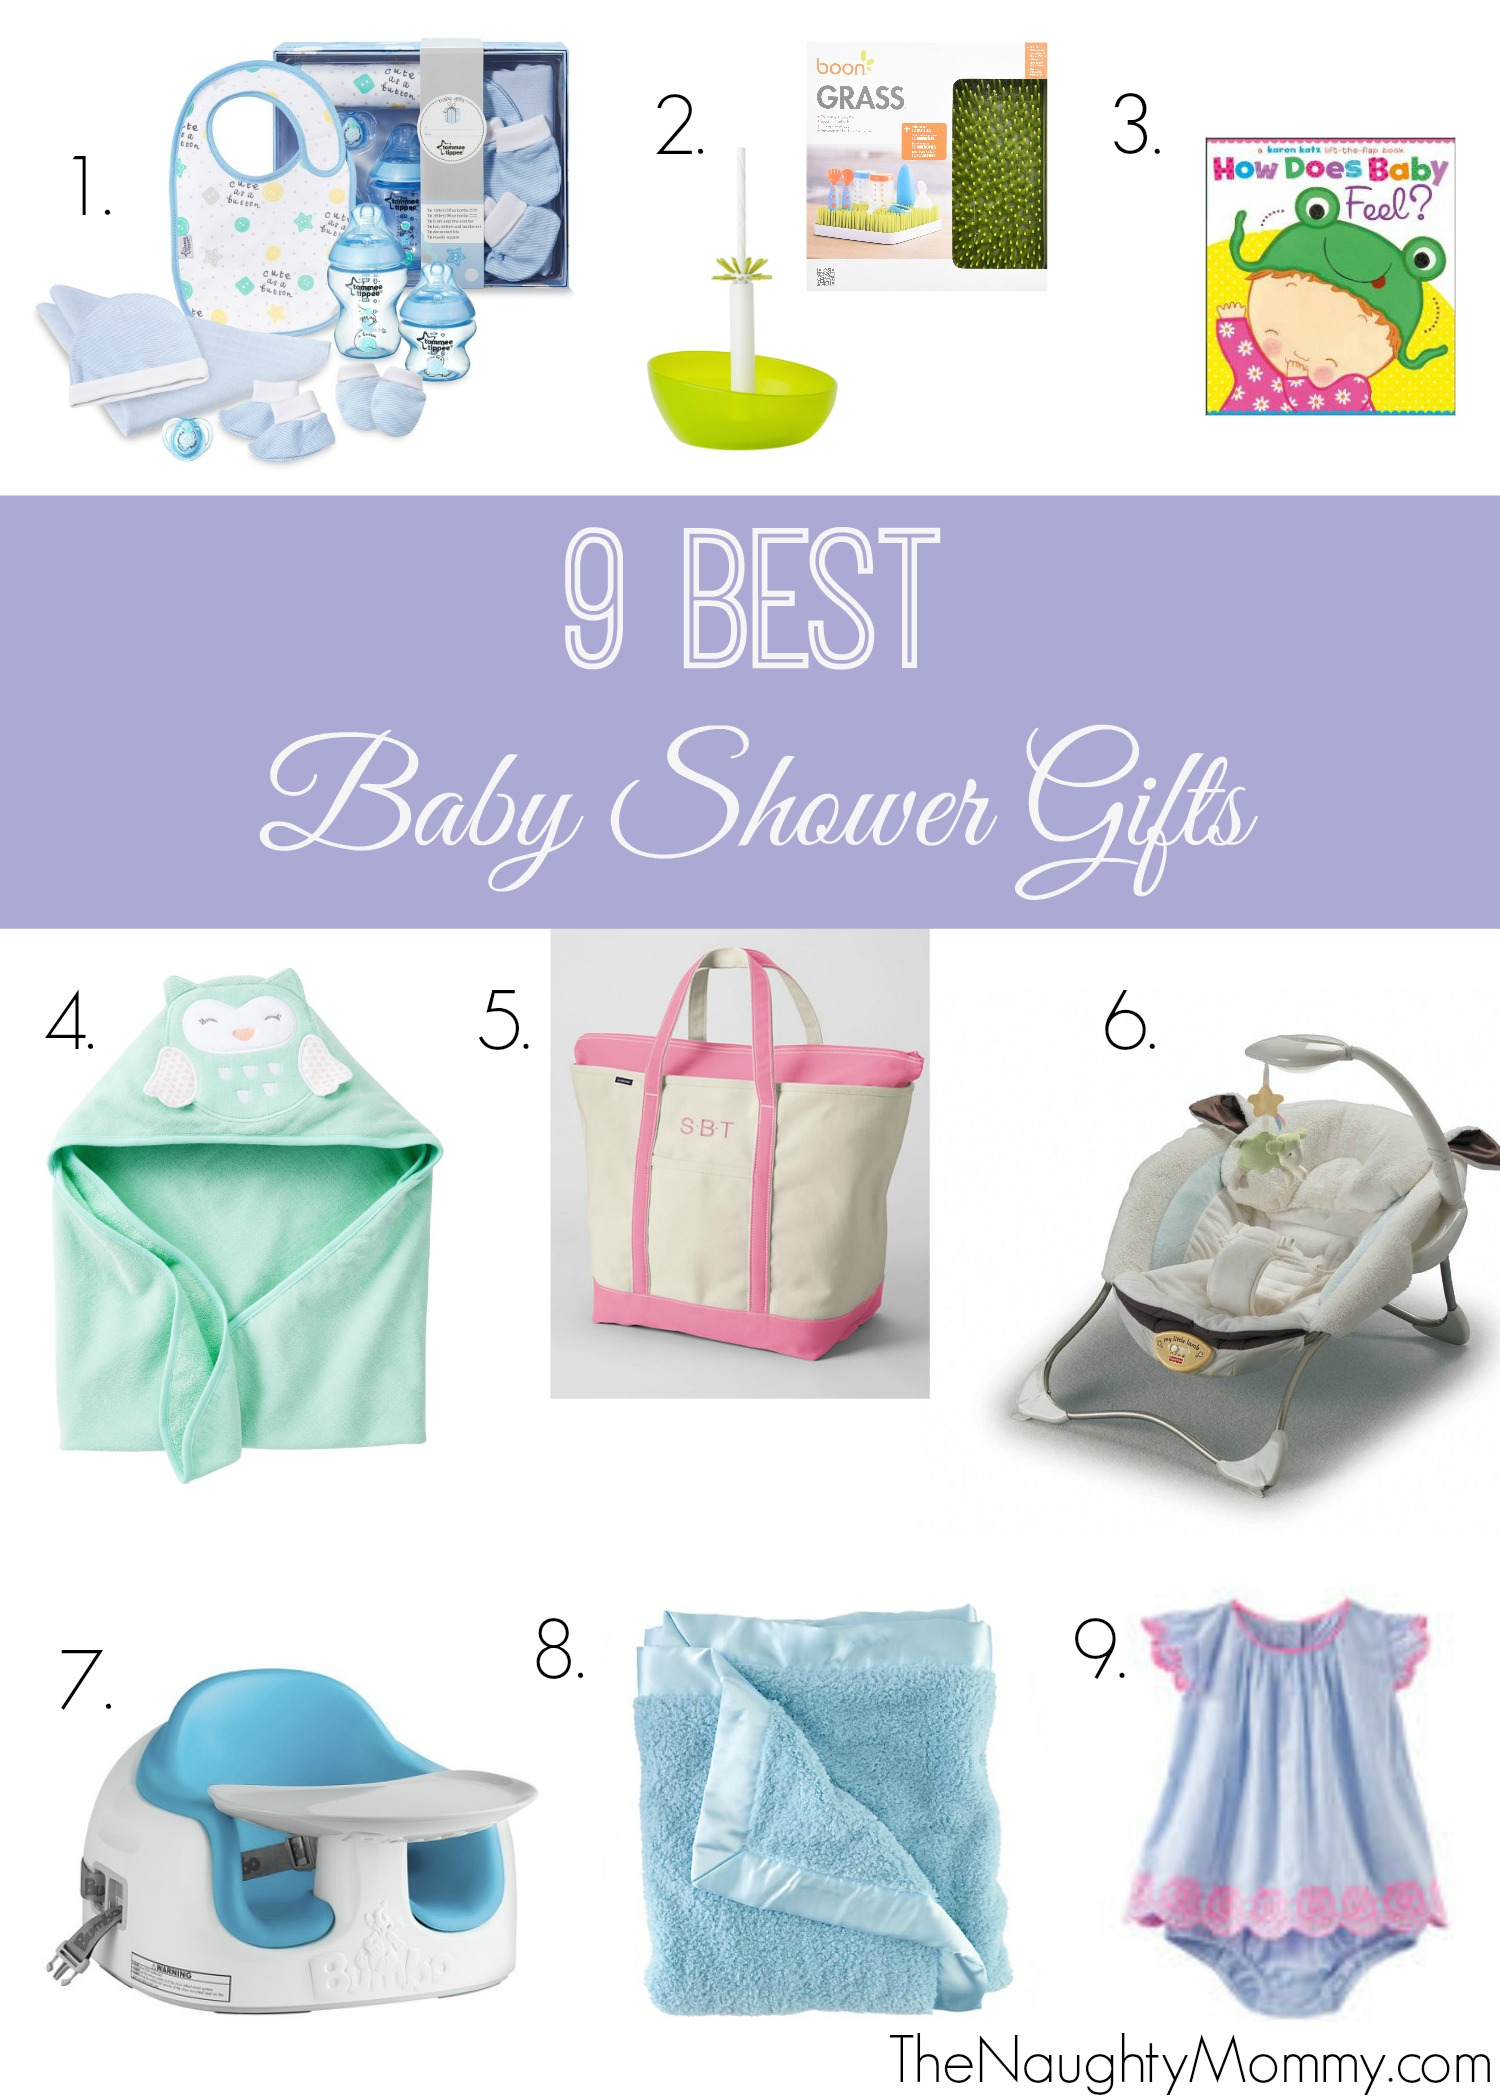 9 best baby shower gifts the naughty mommy 9 best baby shower gifts negle